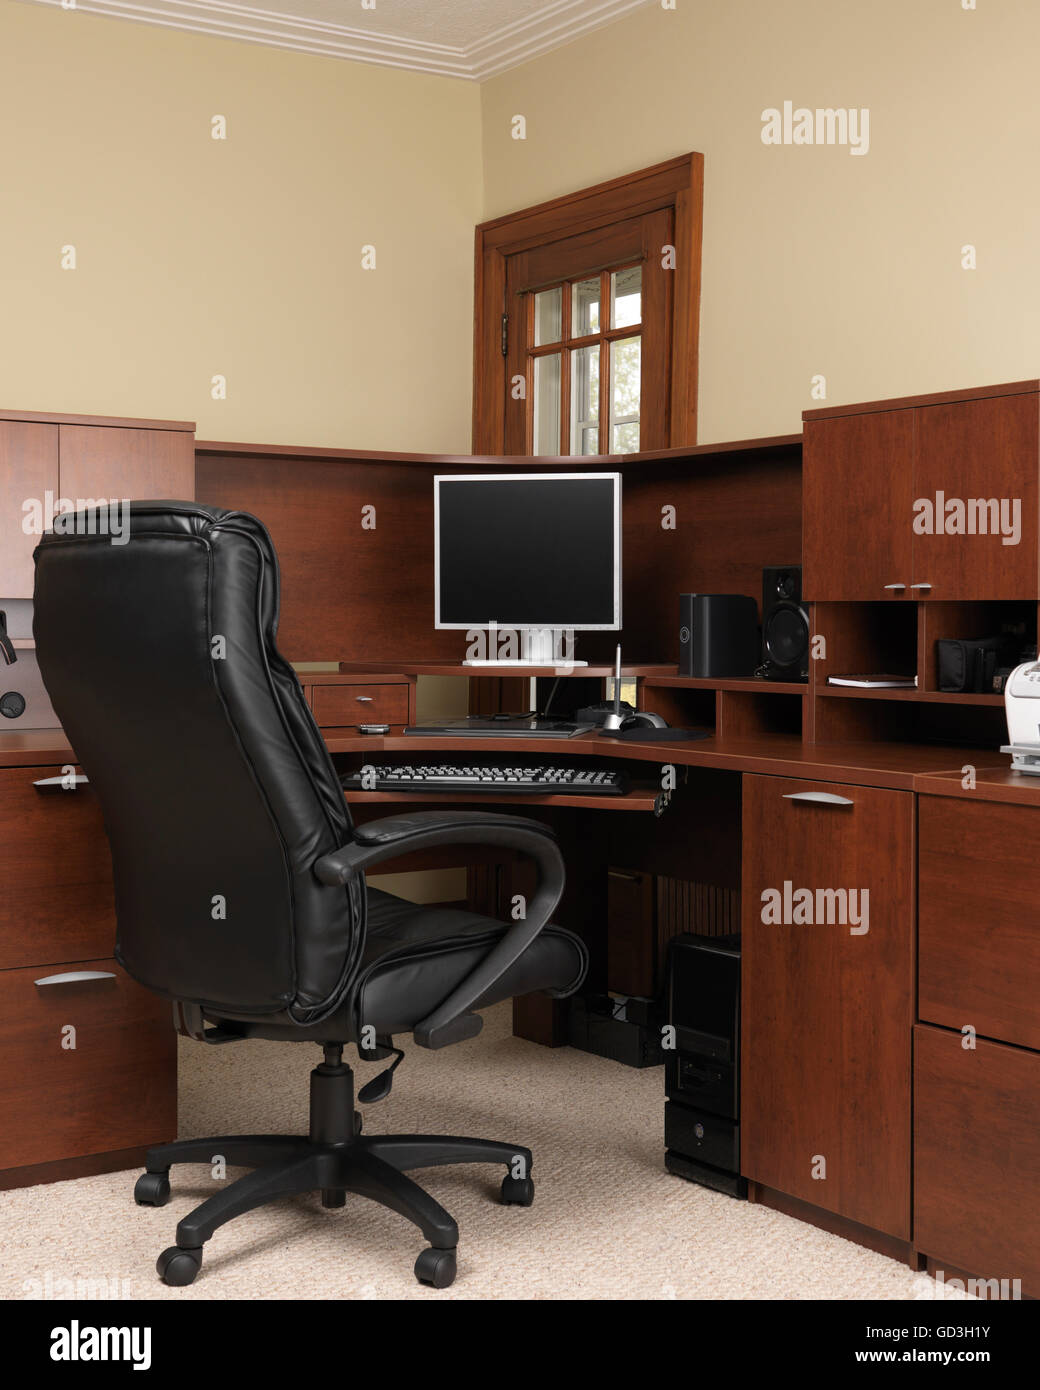 Home office computer desk - Stock Image